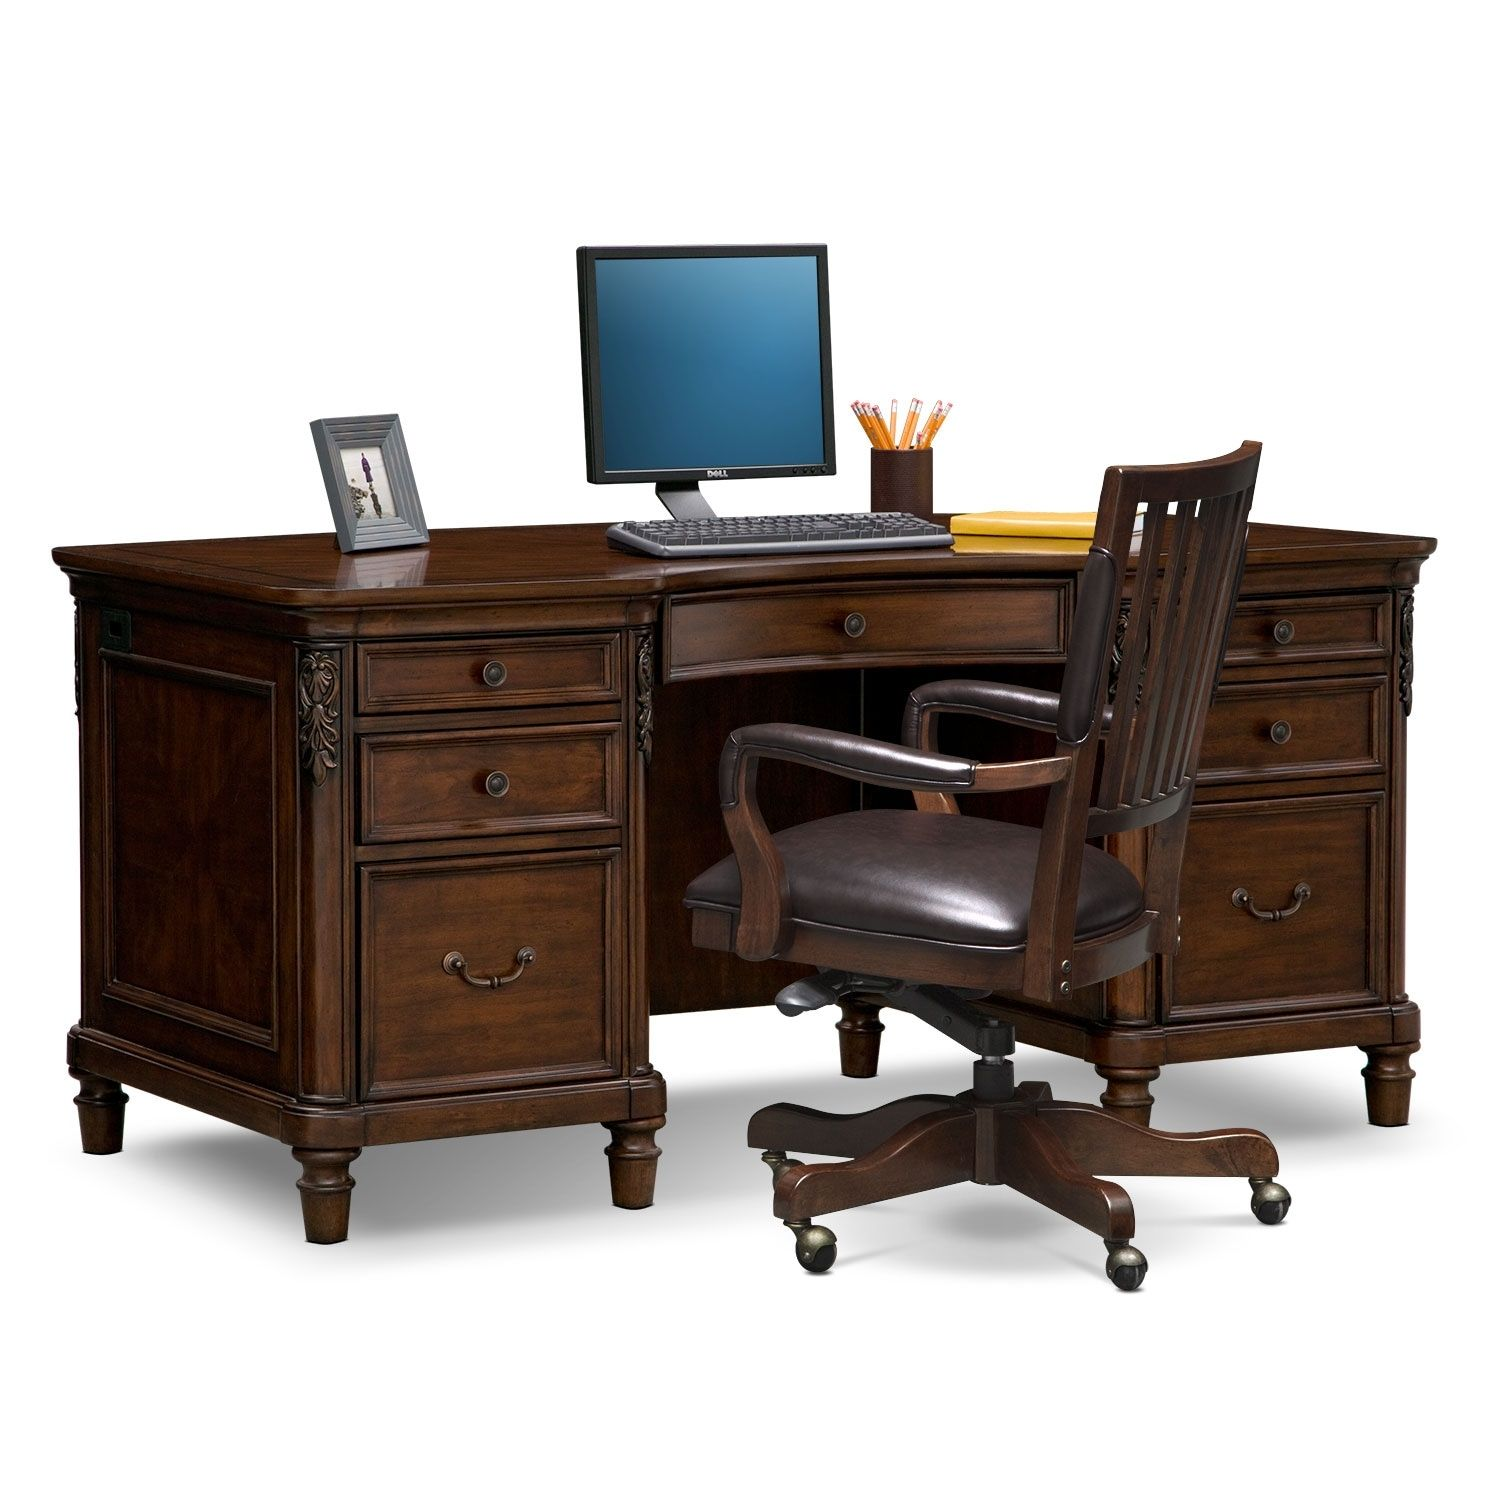 Ashland Executive Desk And Chair Set In 2021 Desk And Chair Set Executive Desk Furniture Office desk and chair set